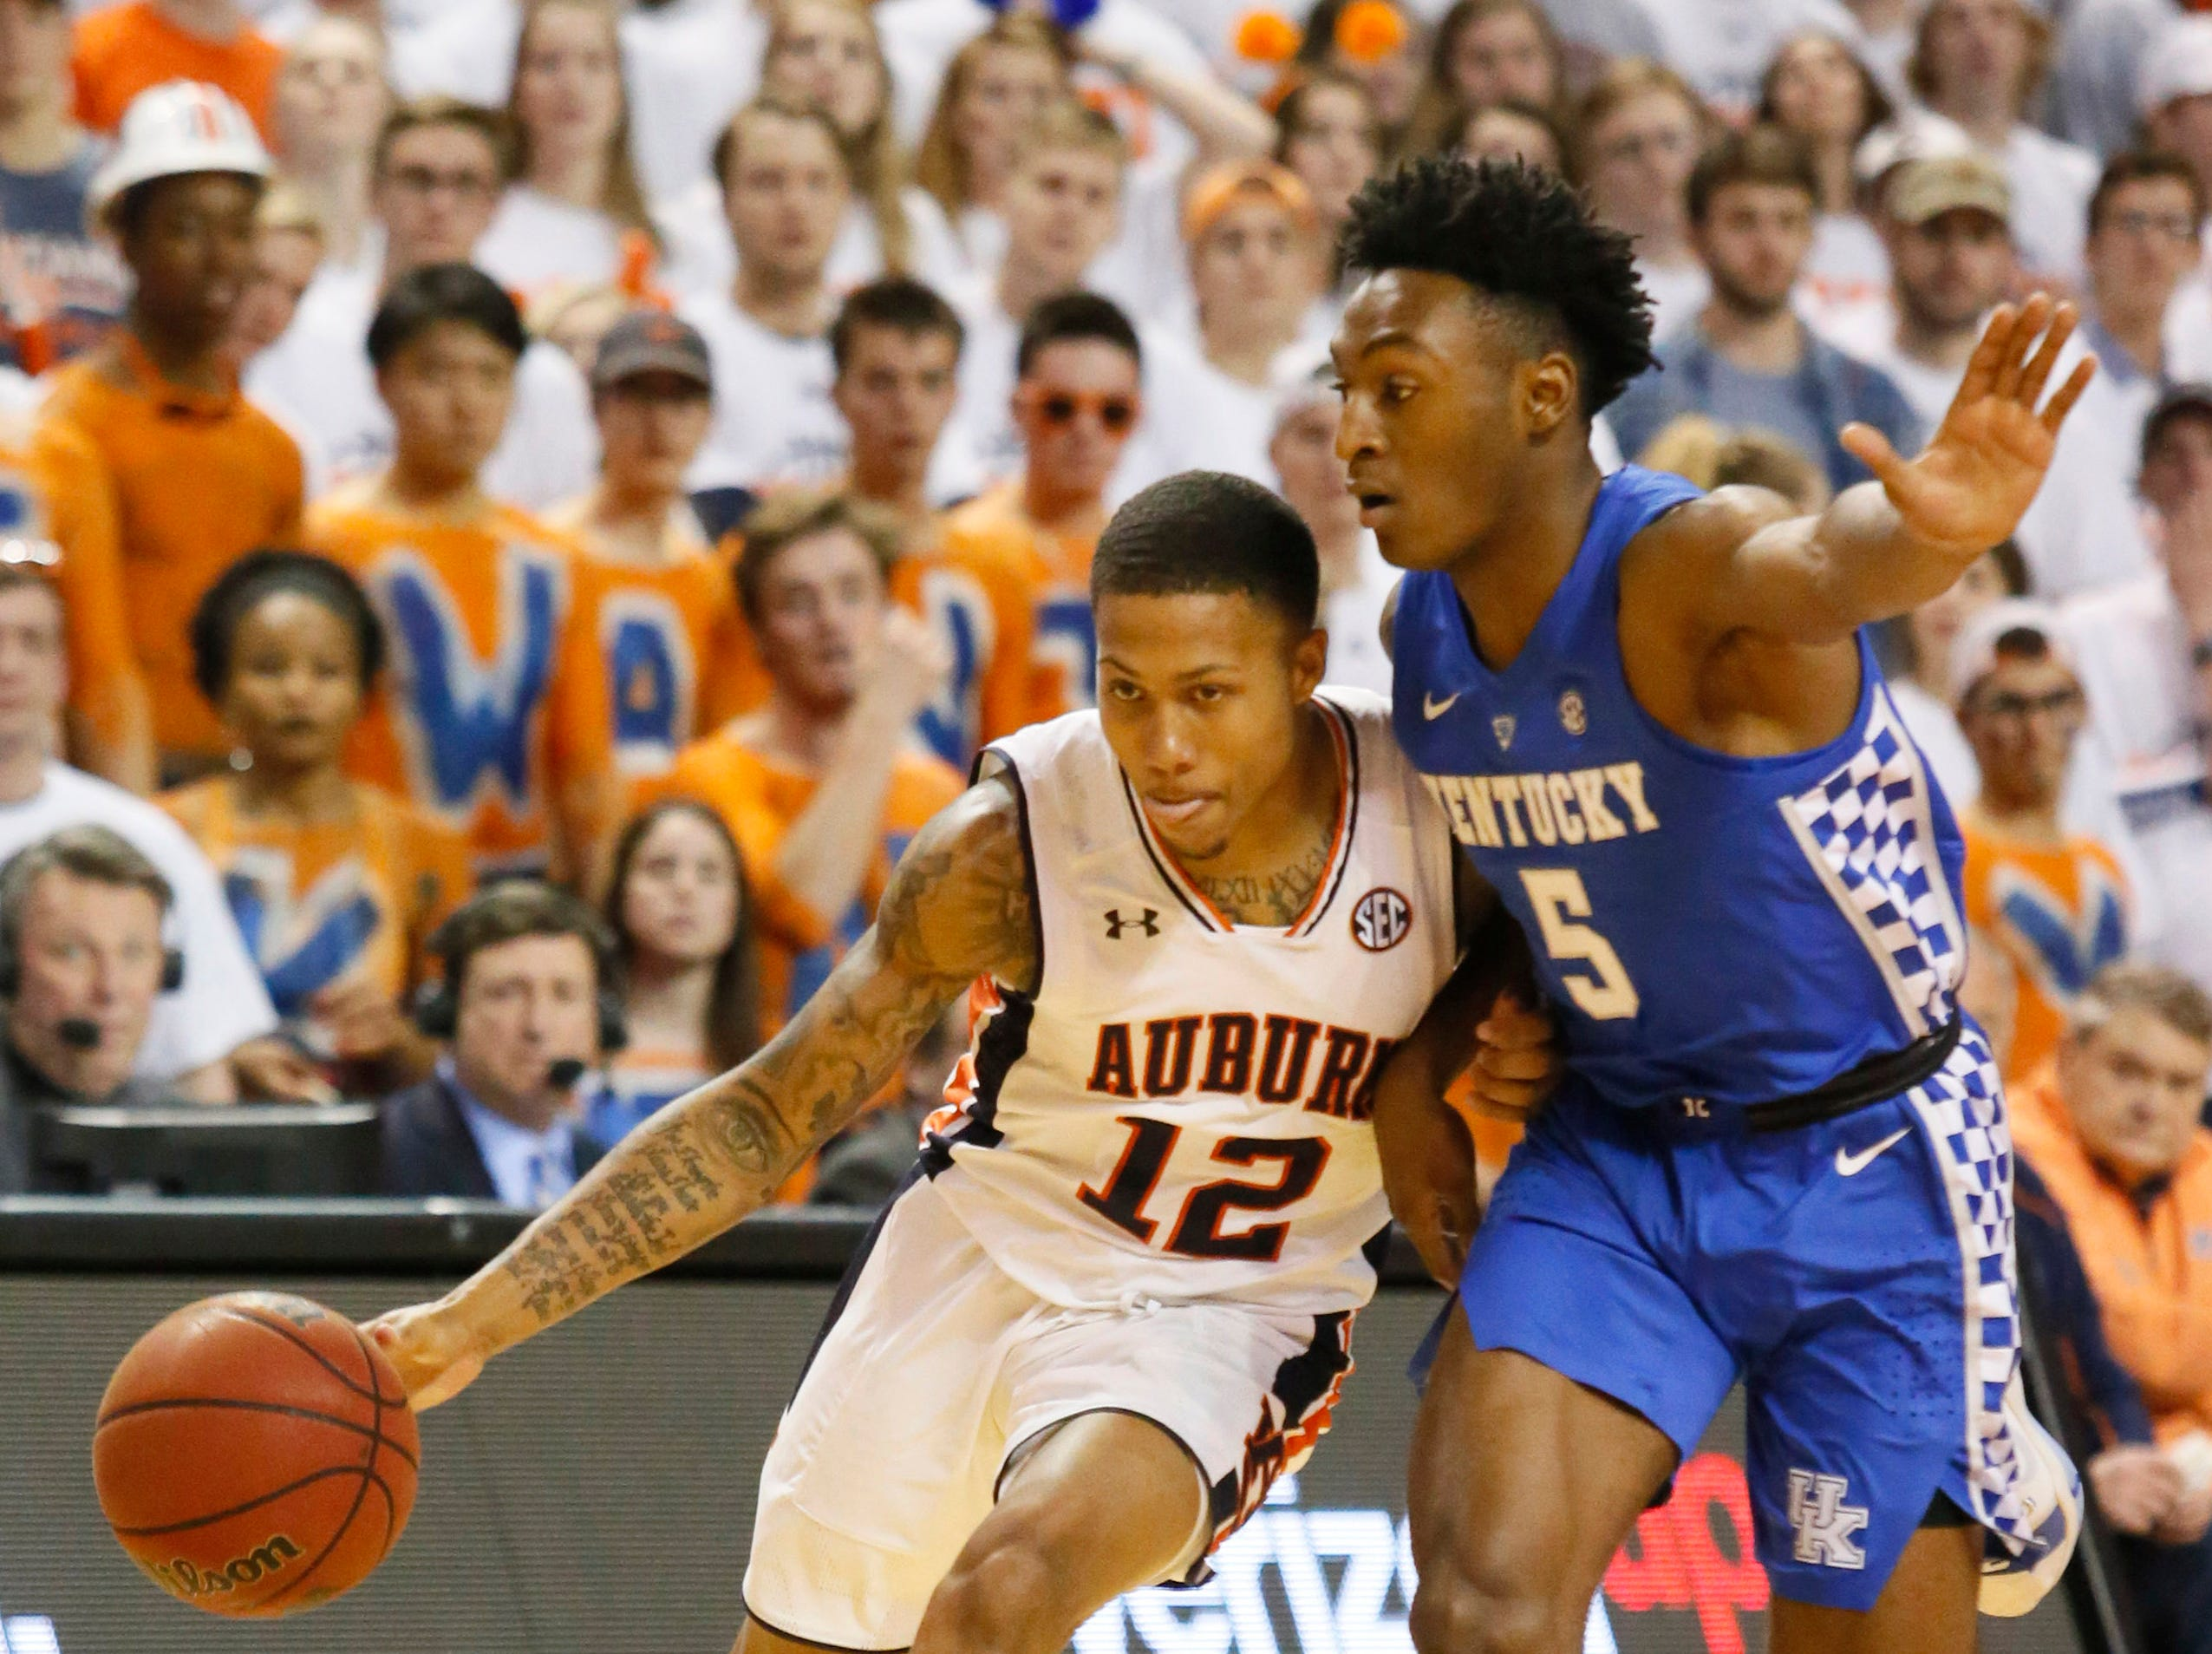 Jan 19, 2019; Auburn, AL, USA;  Kentucky Wildcats guard Immanuel Quiclkey (5) pressures Auburn Tigers guard J'Von McCormick (12) during the second half at Auburn Arena. Mandatory Credit: John Reed-USA TODAY Sports